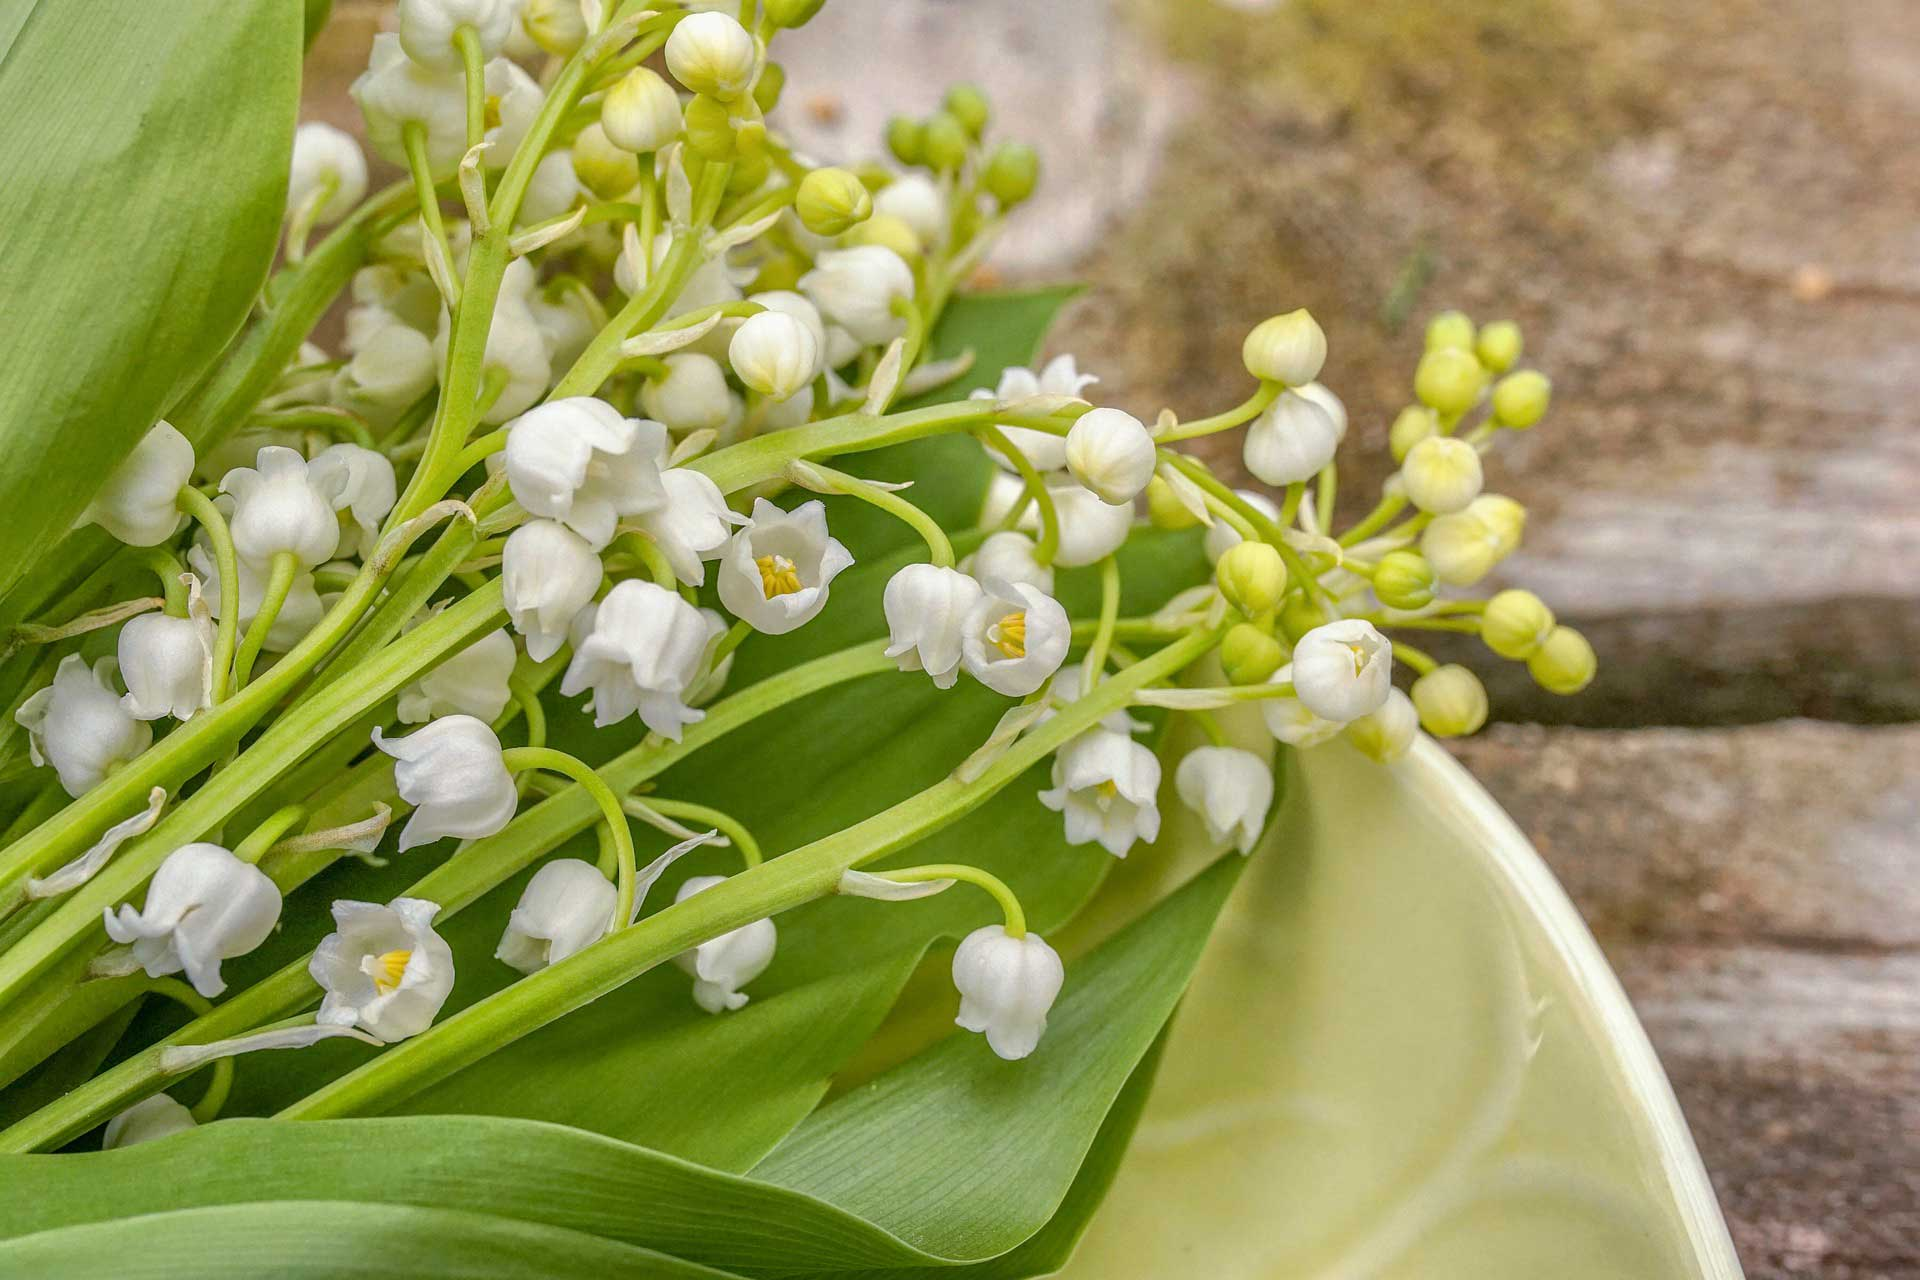 close up of white muguet lily of the valley blossoms on green leaf